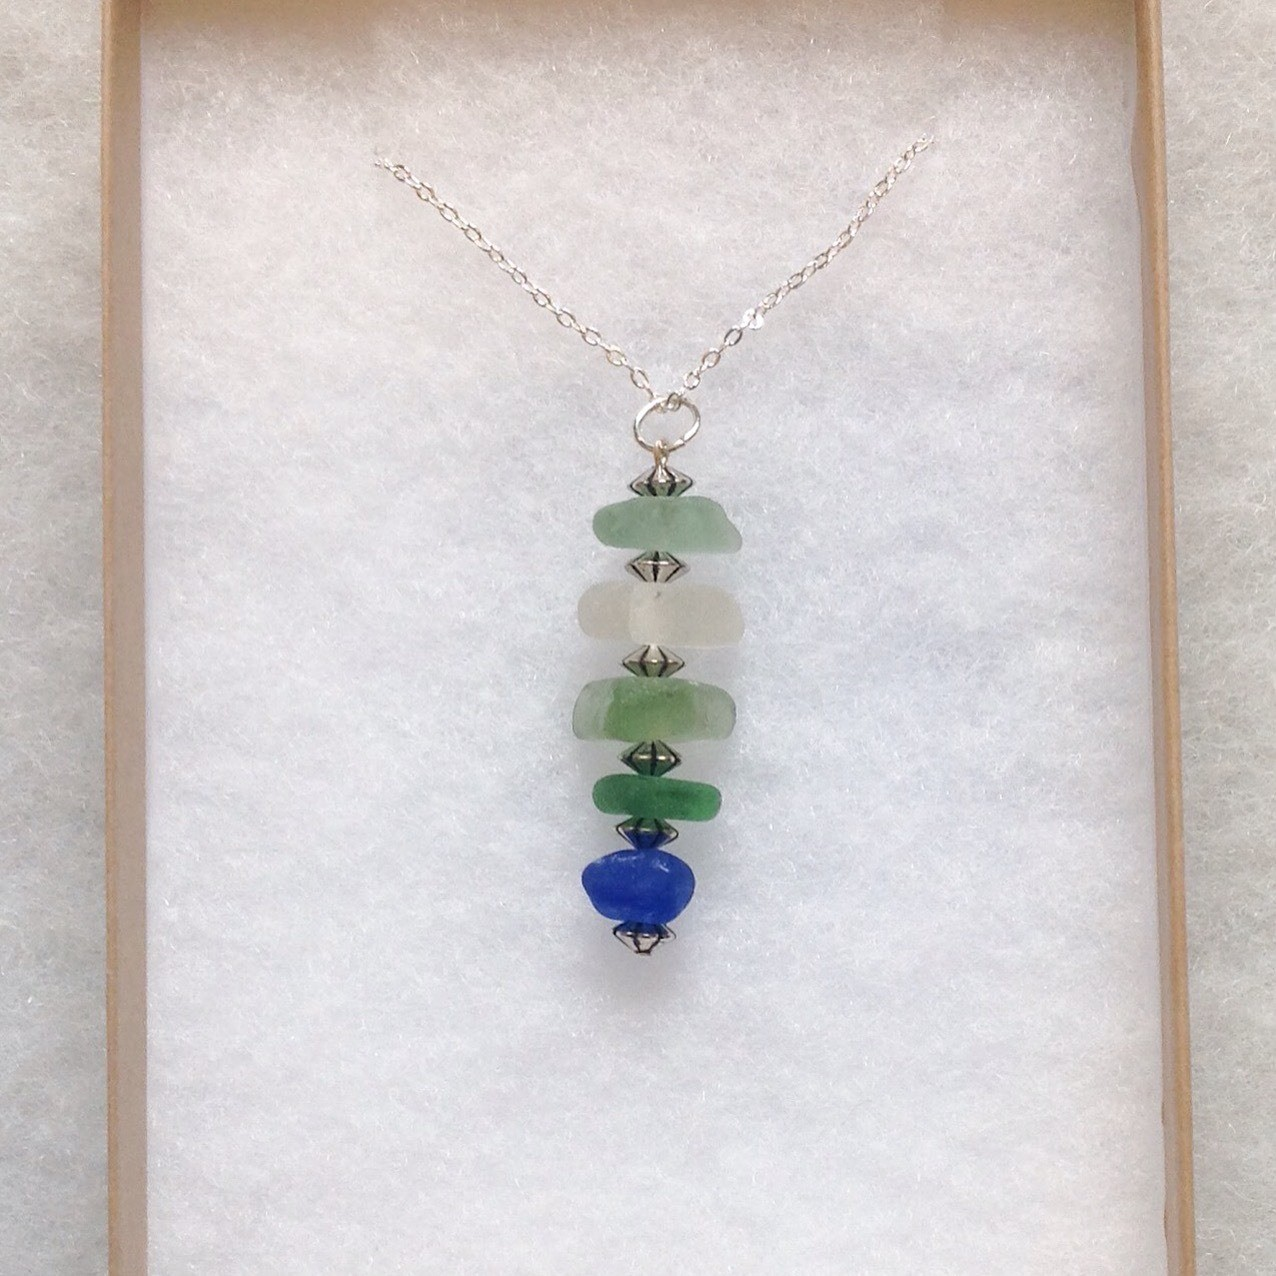 Pendant made from five translucent sea glass gems in subtle greens, cream and a fabulous rare, cobalt blue, collected from the tideline in Whitby and Boggle Hole in North Yorkshire. Beautifully smoothed by sand and sea...